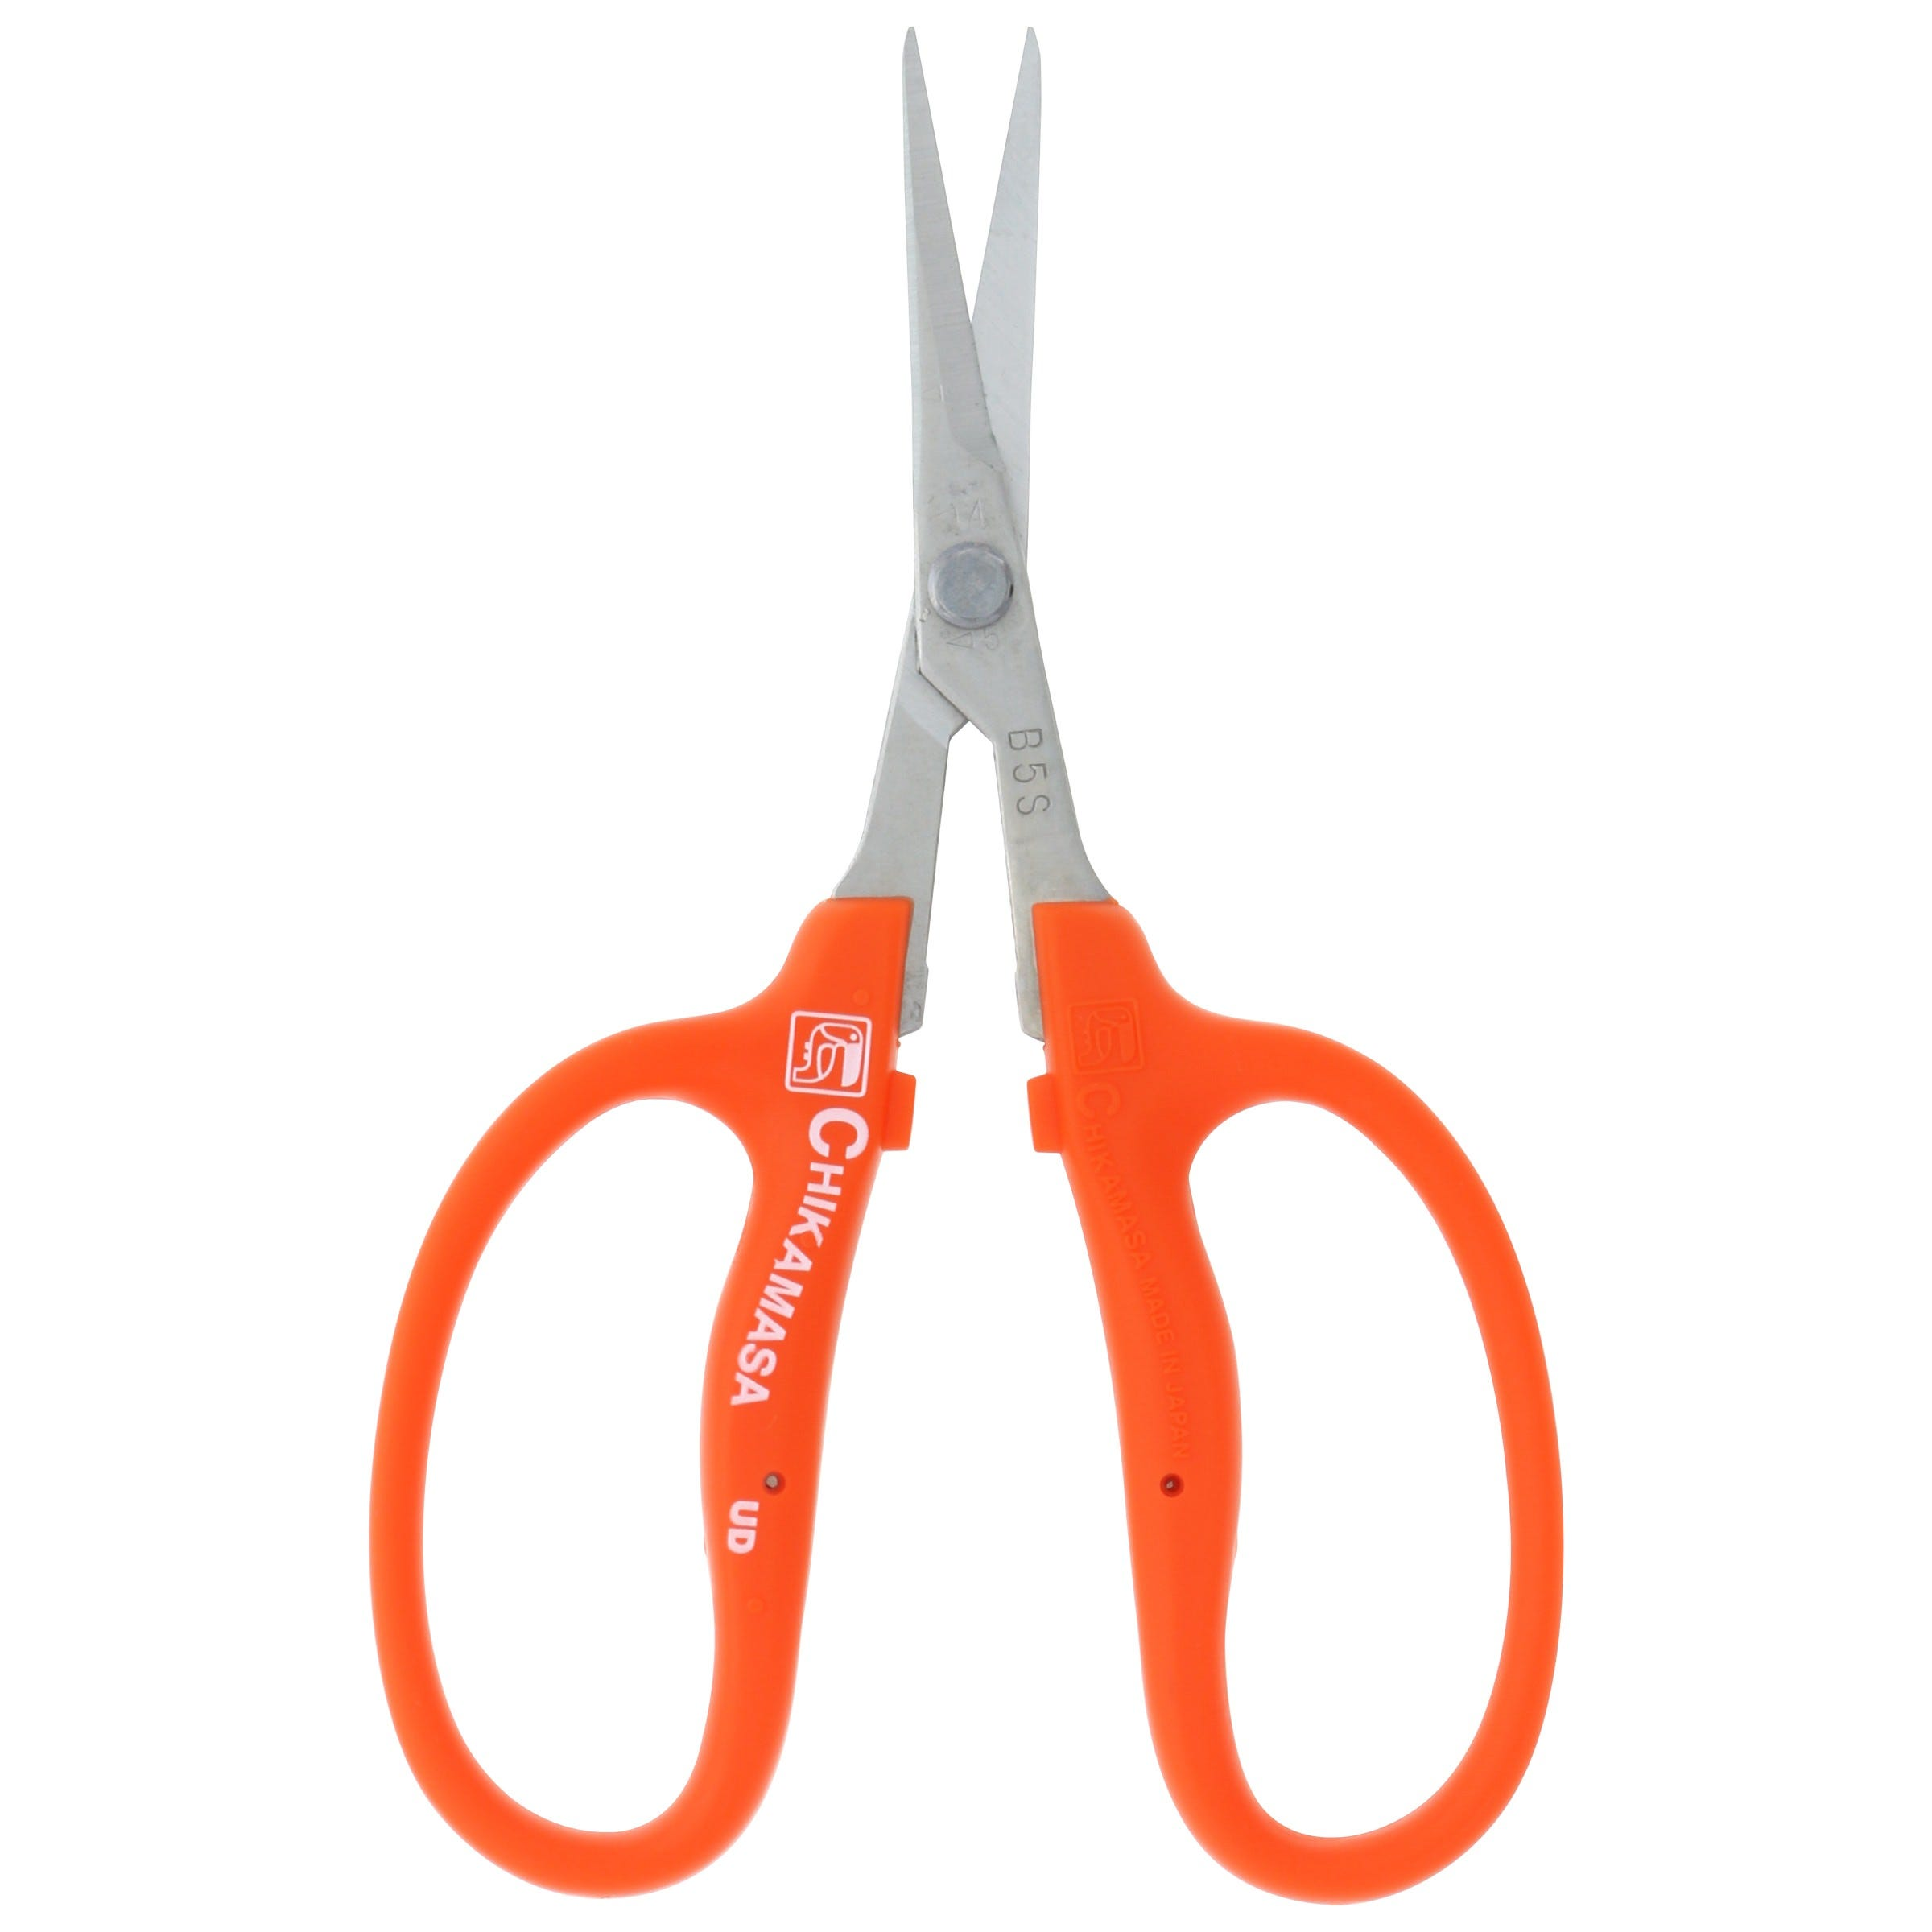 Chikamasa Scissors B-500S The Chikamasa B-500S are straight, stainless steel blades with no coating. These specialized garden scissors are ideal for long hours of cutting and pruning in the field or chair. The outside edges of these Japanese-steel blades are grounded round, a first for Chikamasa. Rounded edges on scissors protect the grain of the flower, grape or other agricultural commodity you're pruning from bruising or other damage as you work. These trimmers are high-quality Japanese artistry at its finest. Plus, since the B-500 series was field-tested on dried flowers and by U.S. federal occupational safety hazard inspectors, you can be sure they were thoughtfully designed with your needs in mind.